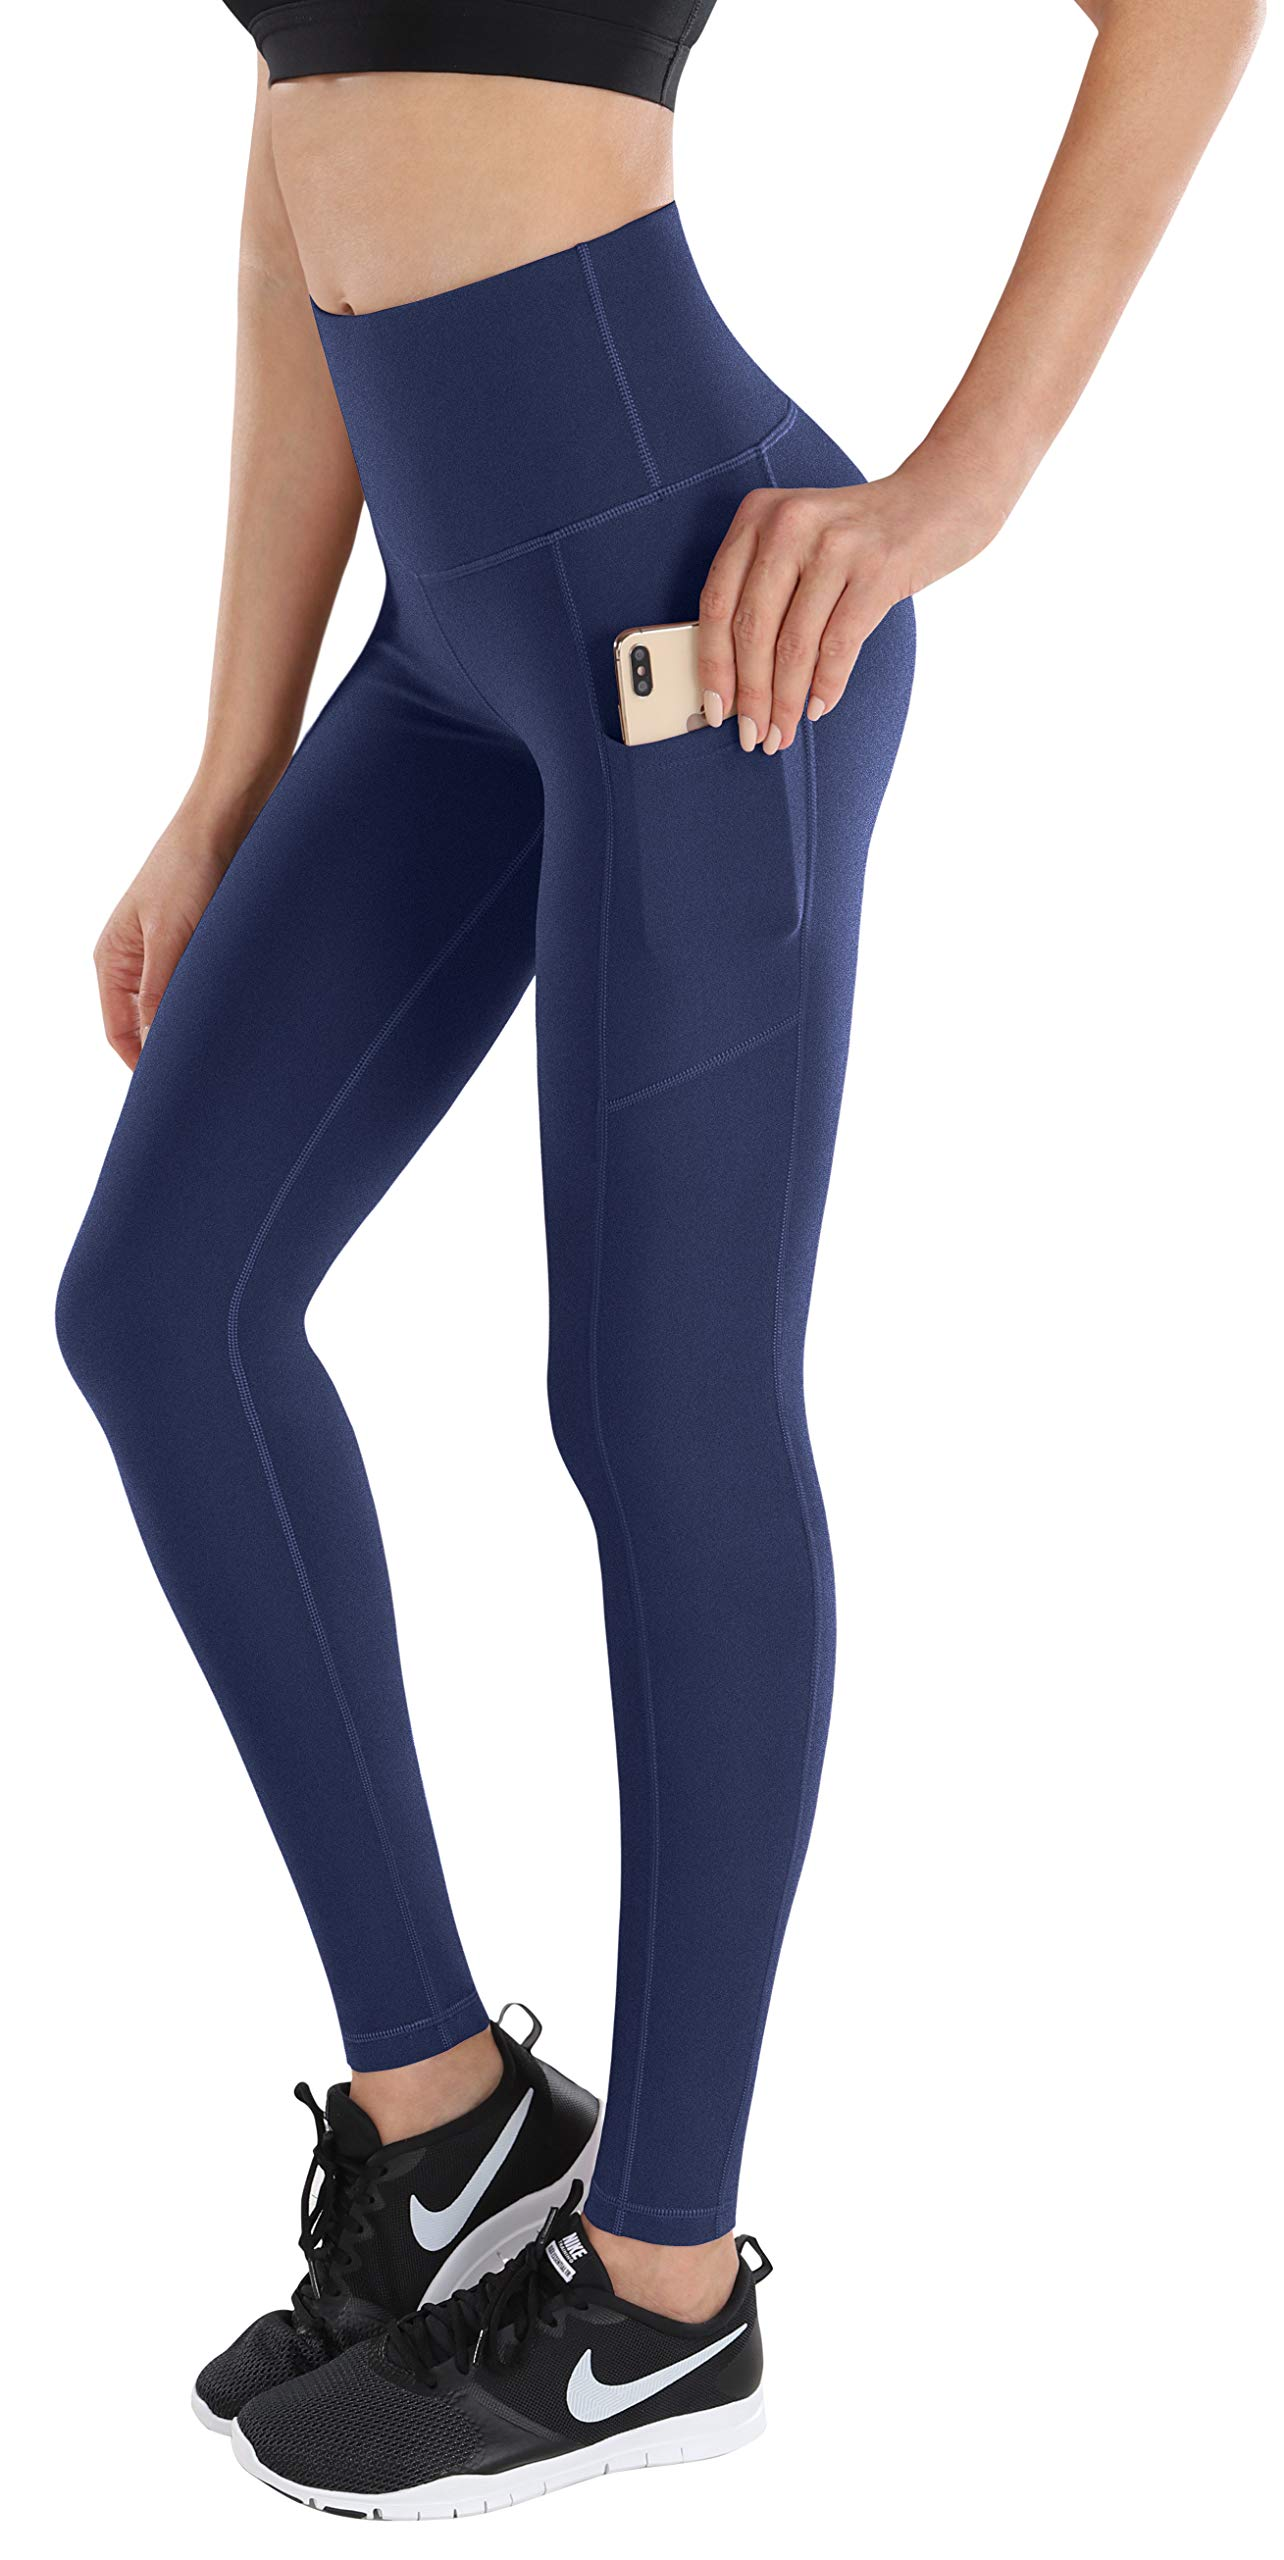 ESPIDOO Yoga Pants with Pockets for Women, High Waist Tummy Control, 4 Way Stretch Workout Leggings